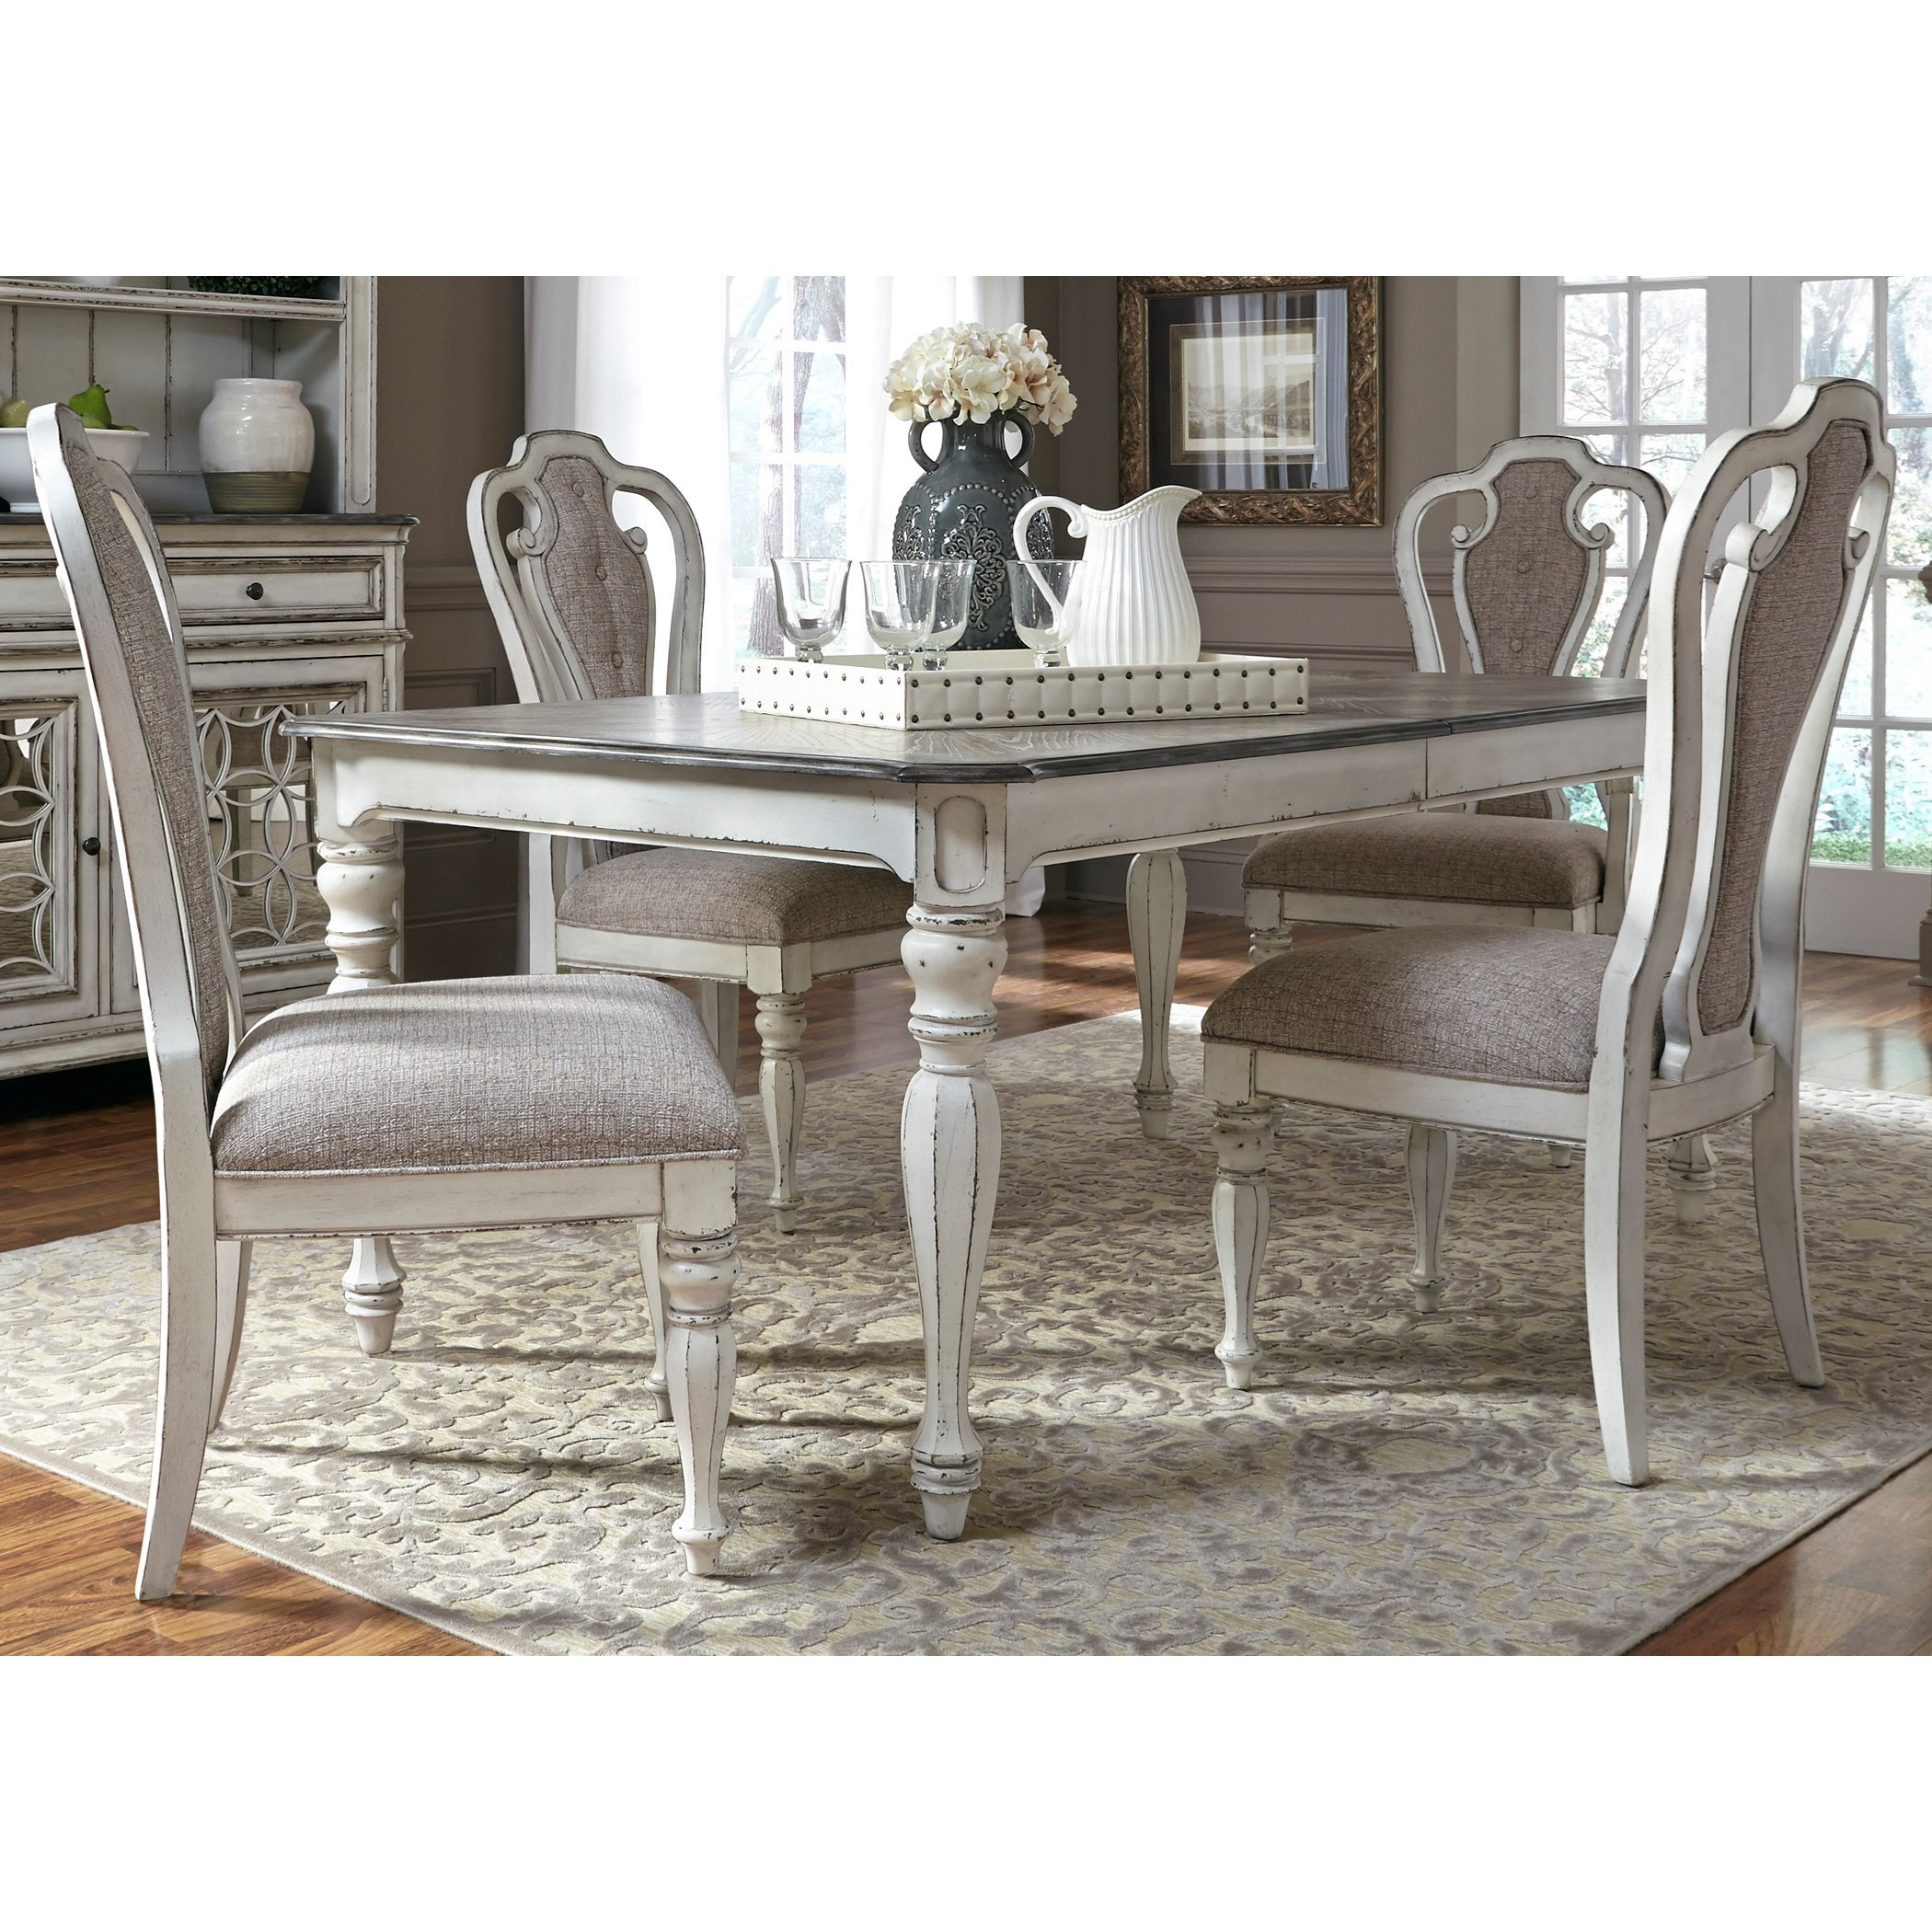 Magnolia Manor Dining 5 Piece Rectangular Table Set by Liberty Furniture at Turk Furniture